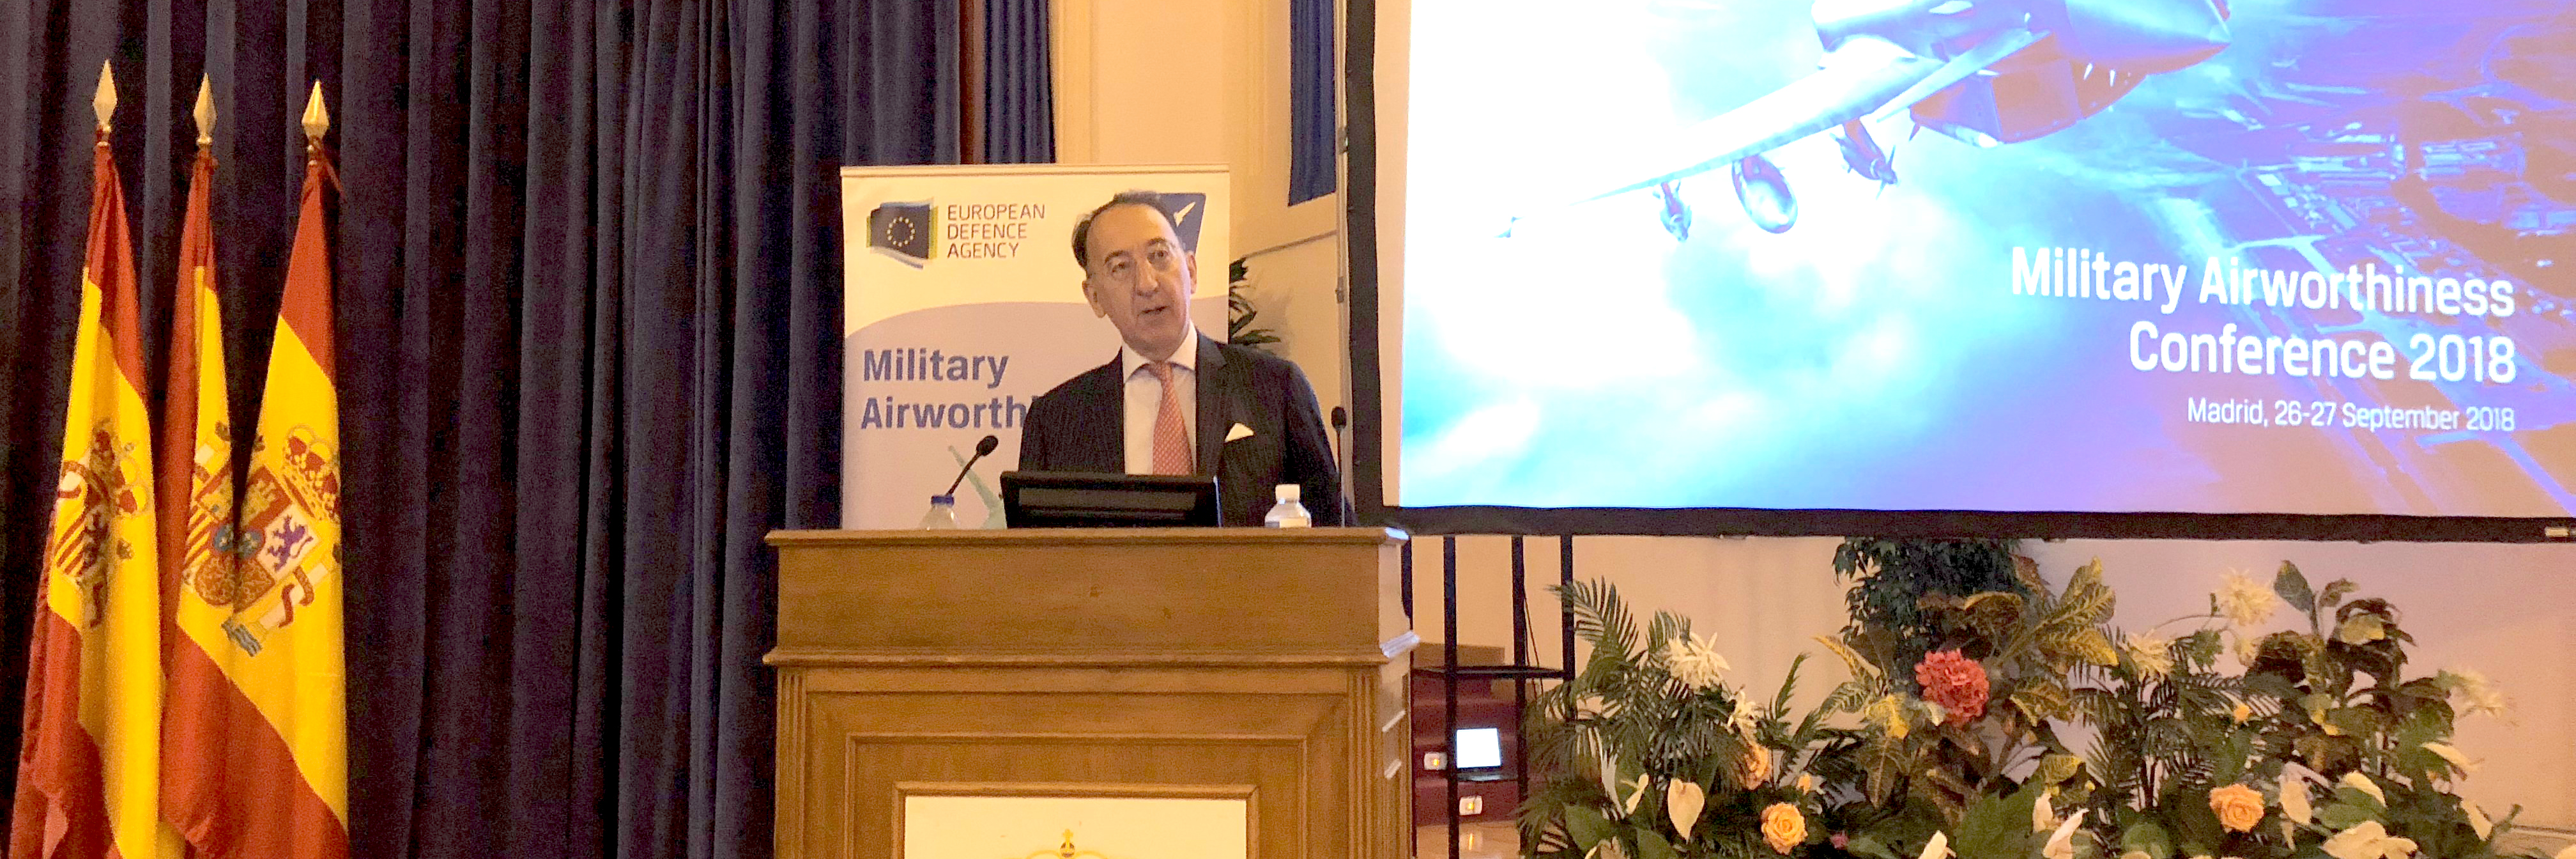 2018 Military Airworthiness Conference opens in Madrid